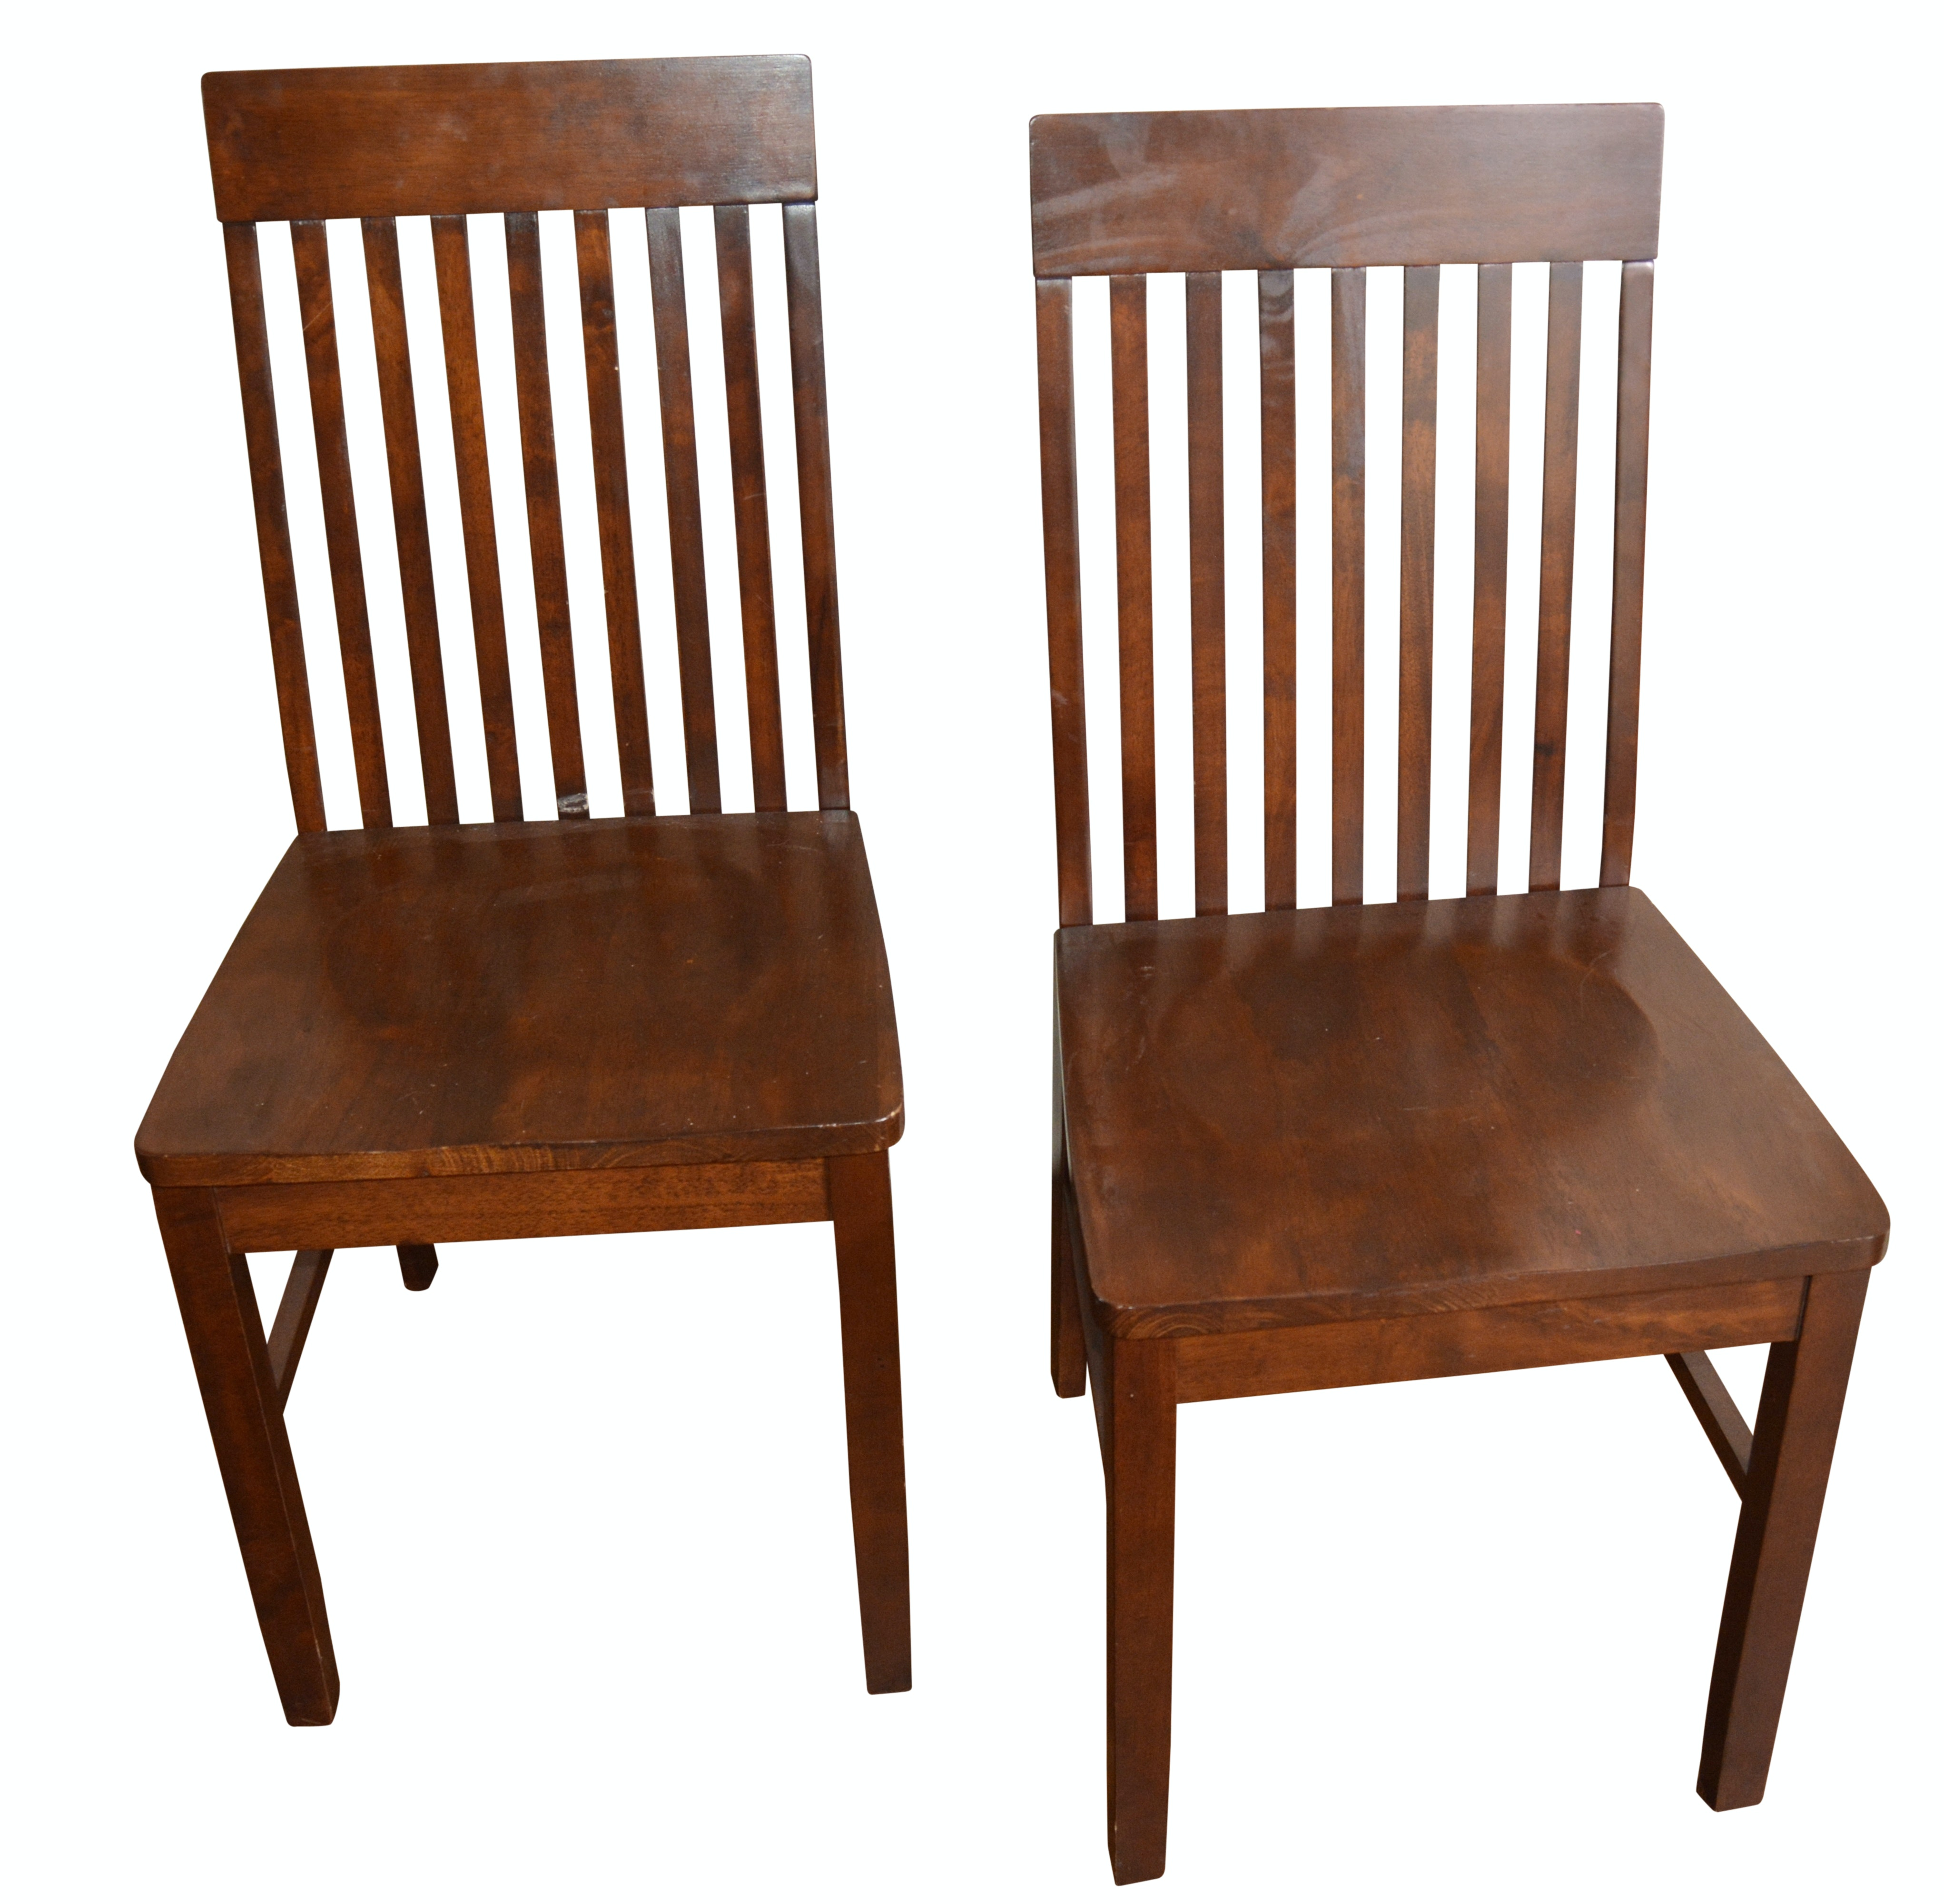 Contemporary Walnut Stained Wood Slat Back Side Chairs